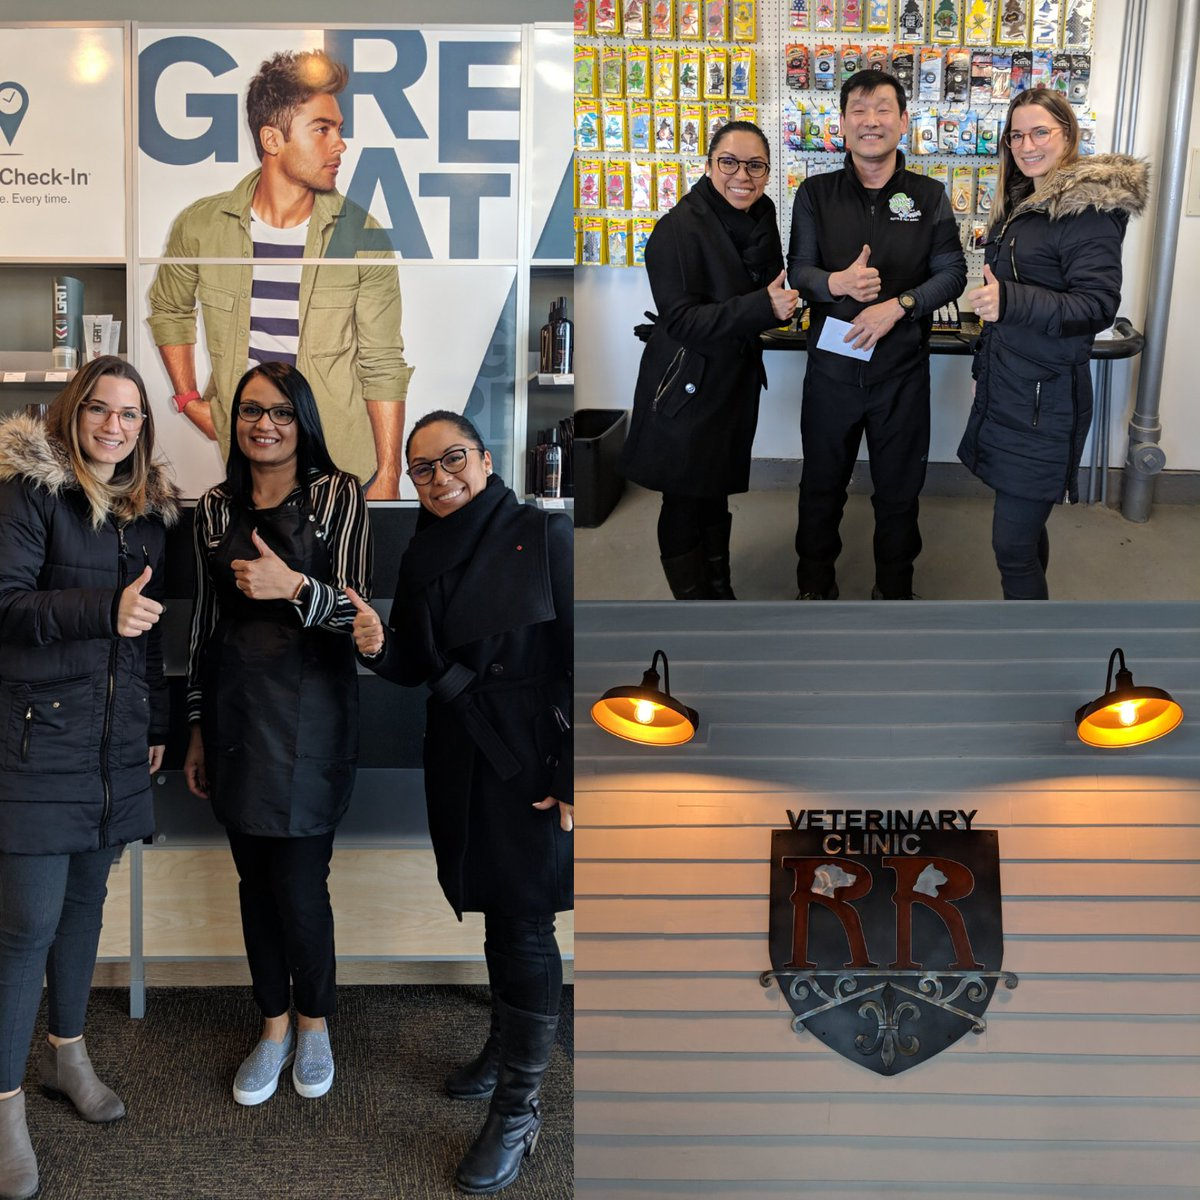 Team Economic Development welcoming @GreatClips​, Range Road Veterinary Clinic​, and New owner Jimmy at @RimsAndRovers​ #ShopT4X #investinbeaumont #BeaumontAB  http://investinbeaumont.ca